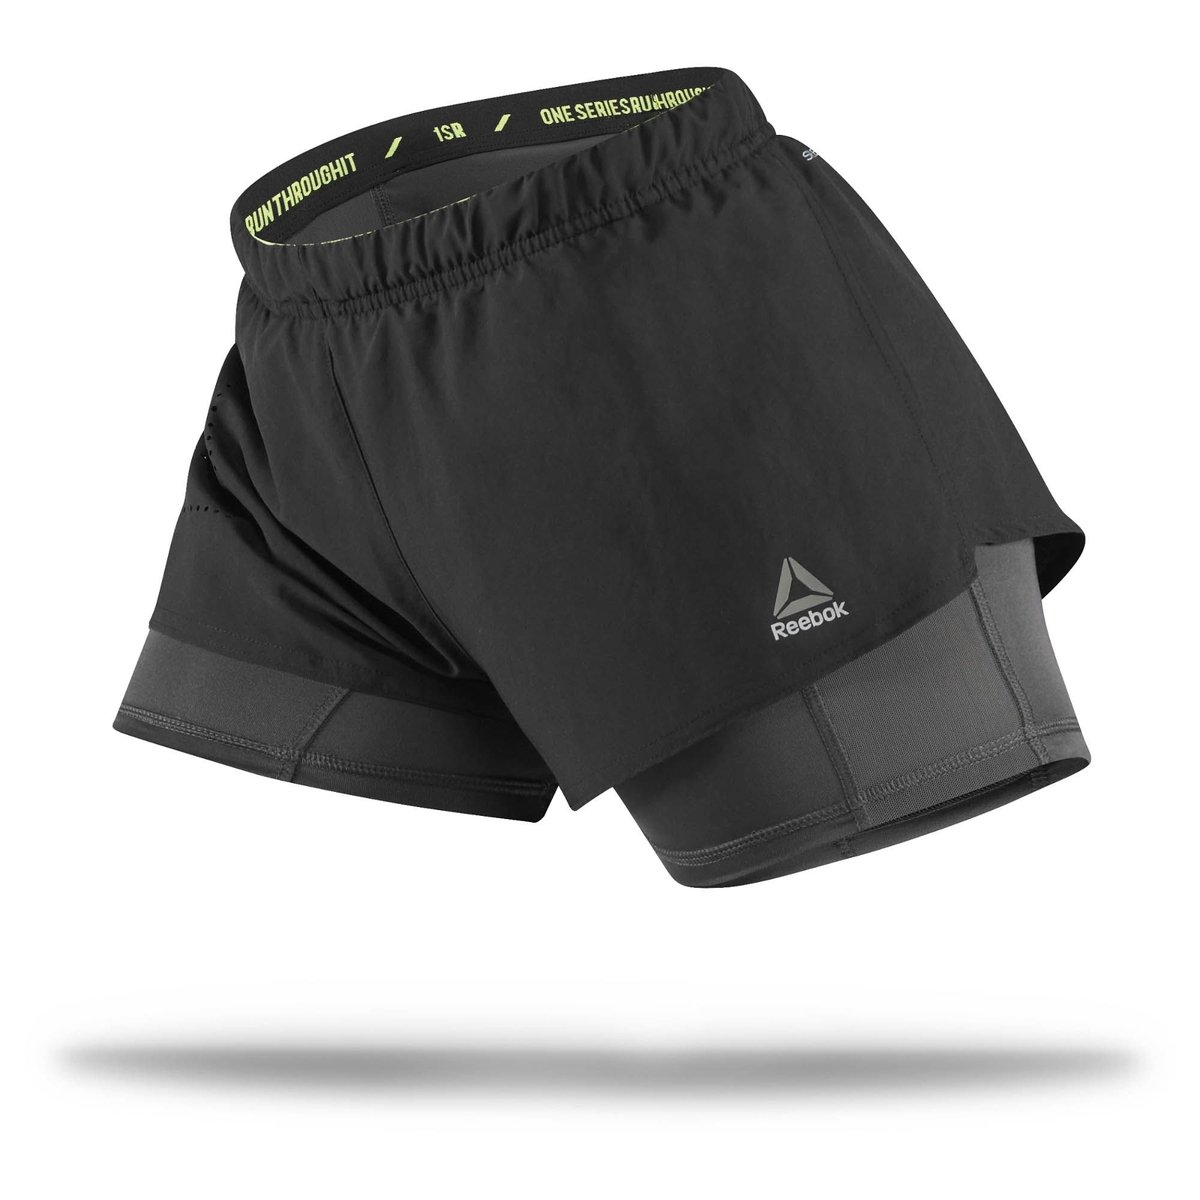 Series Preto One Short Series Reebok Reebok 2In1 Short One qWT1zYxw6q